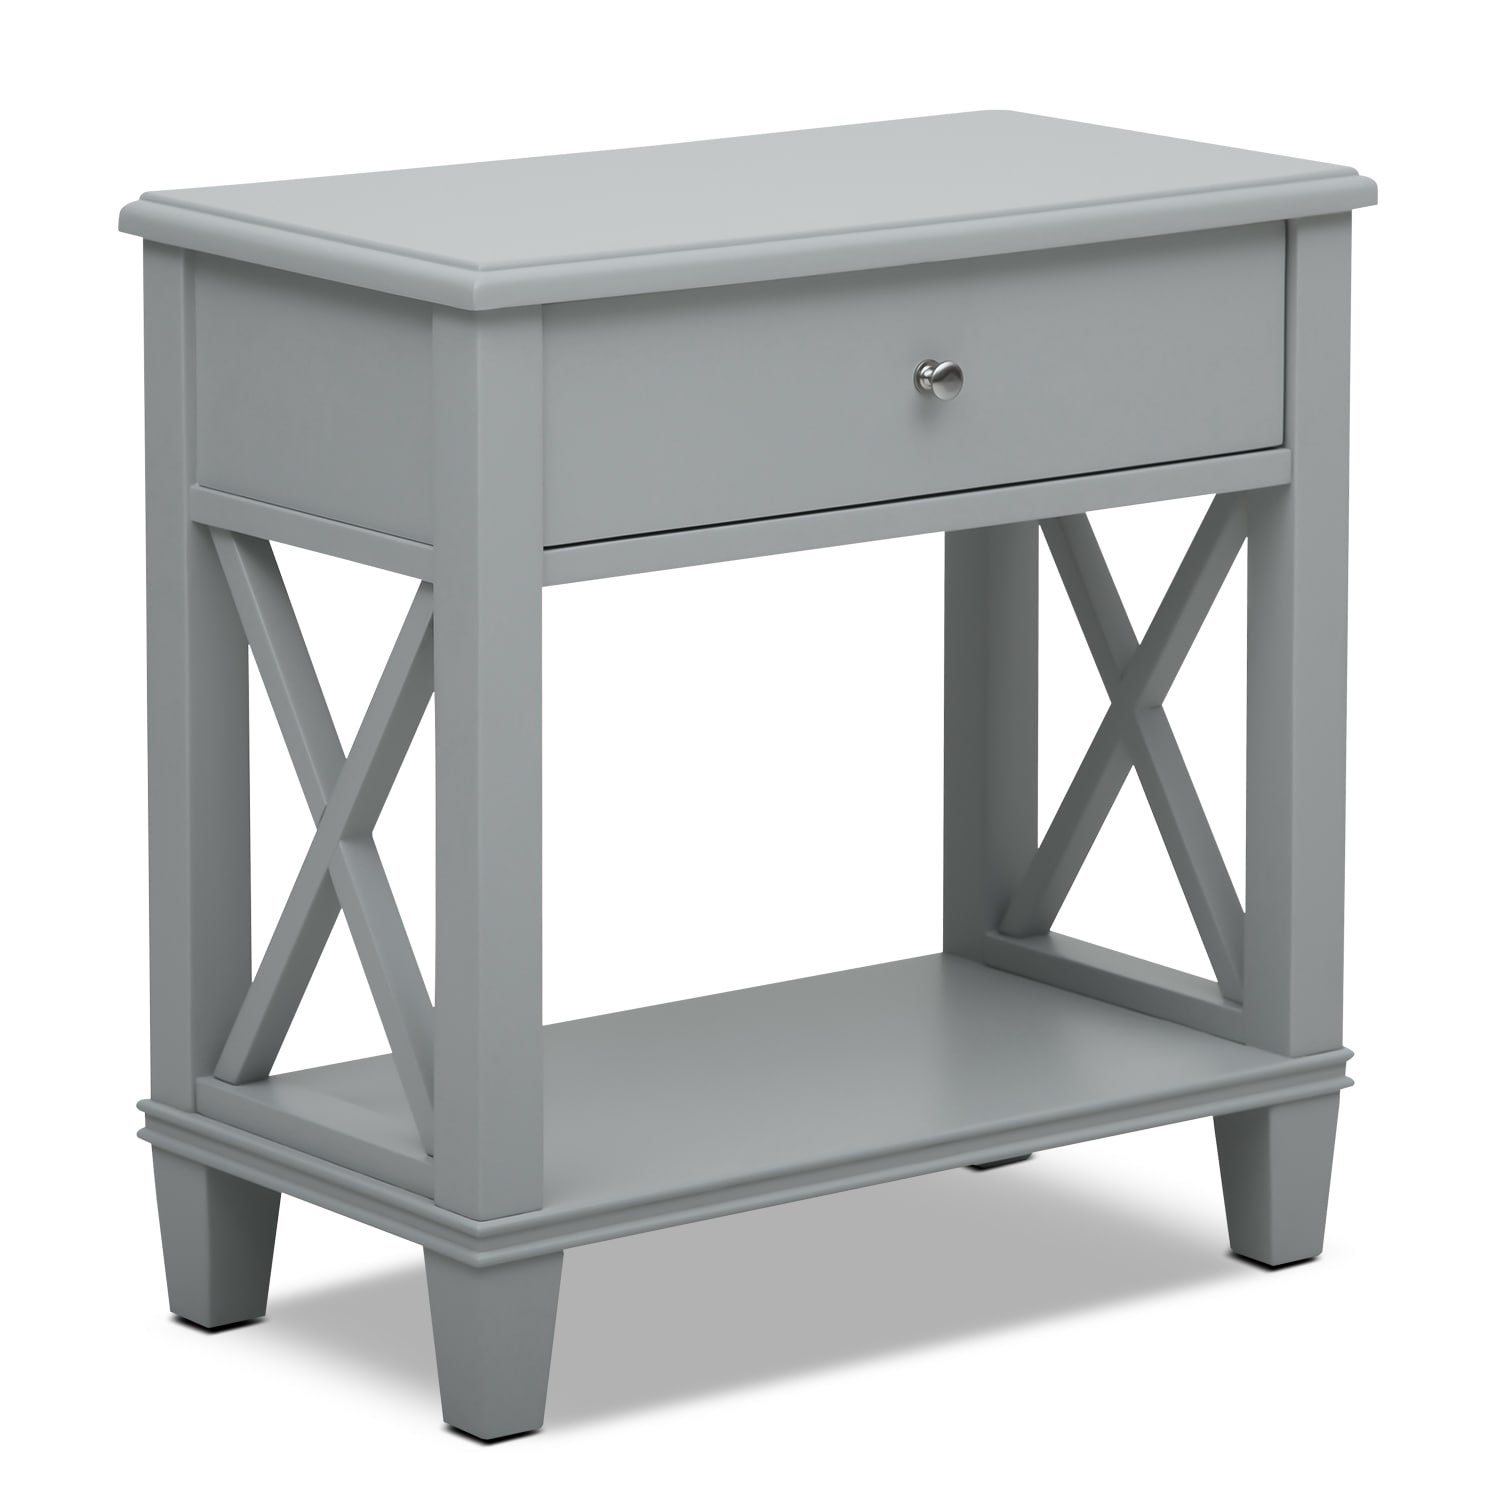 Accent and Occasional Furniture - Liat Accent Table - Gray